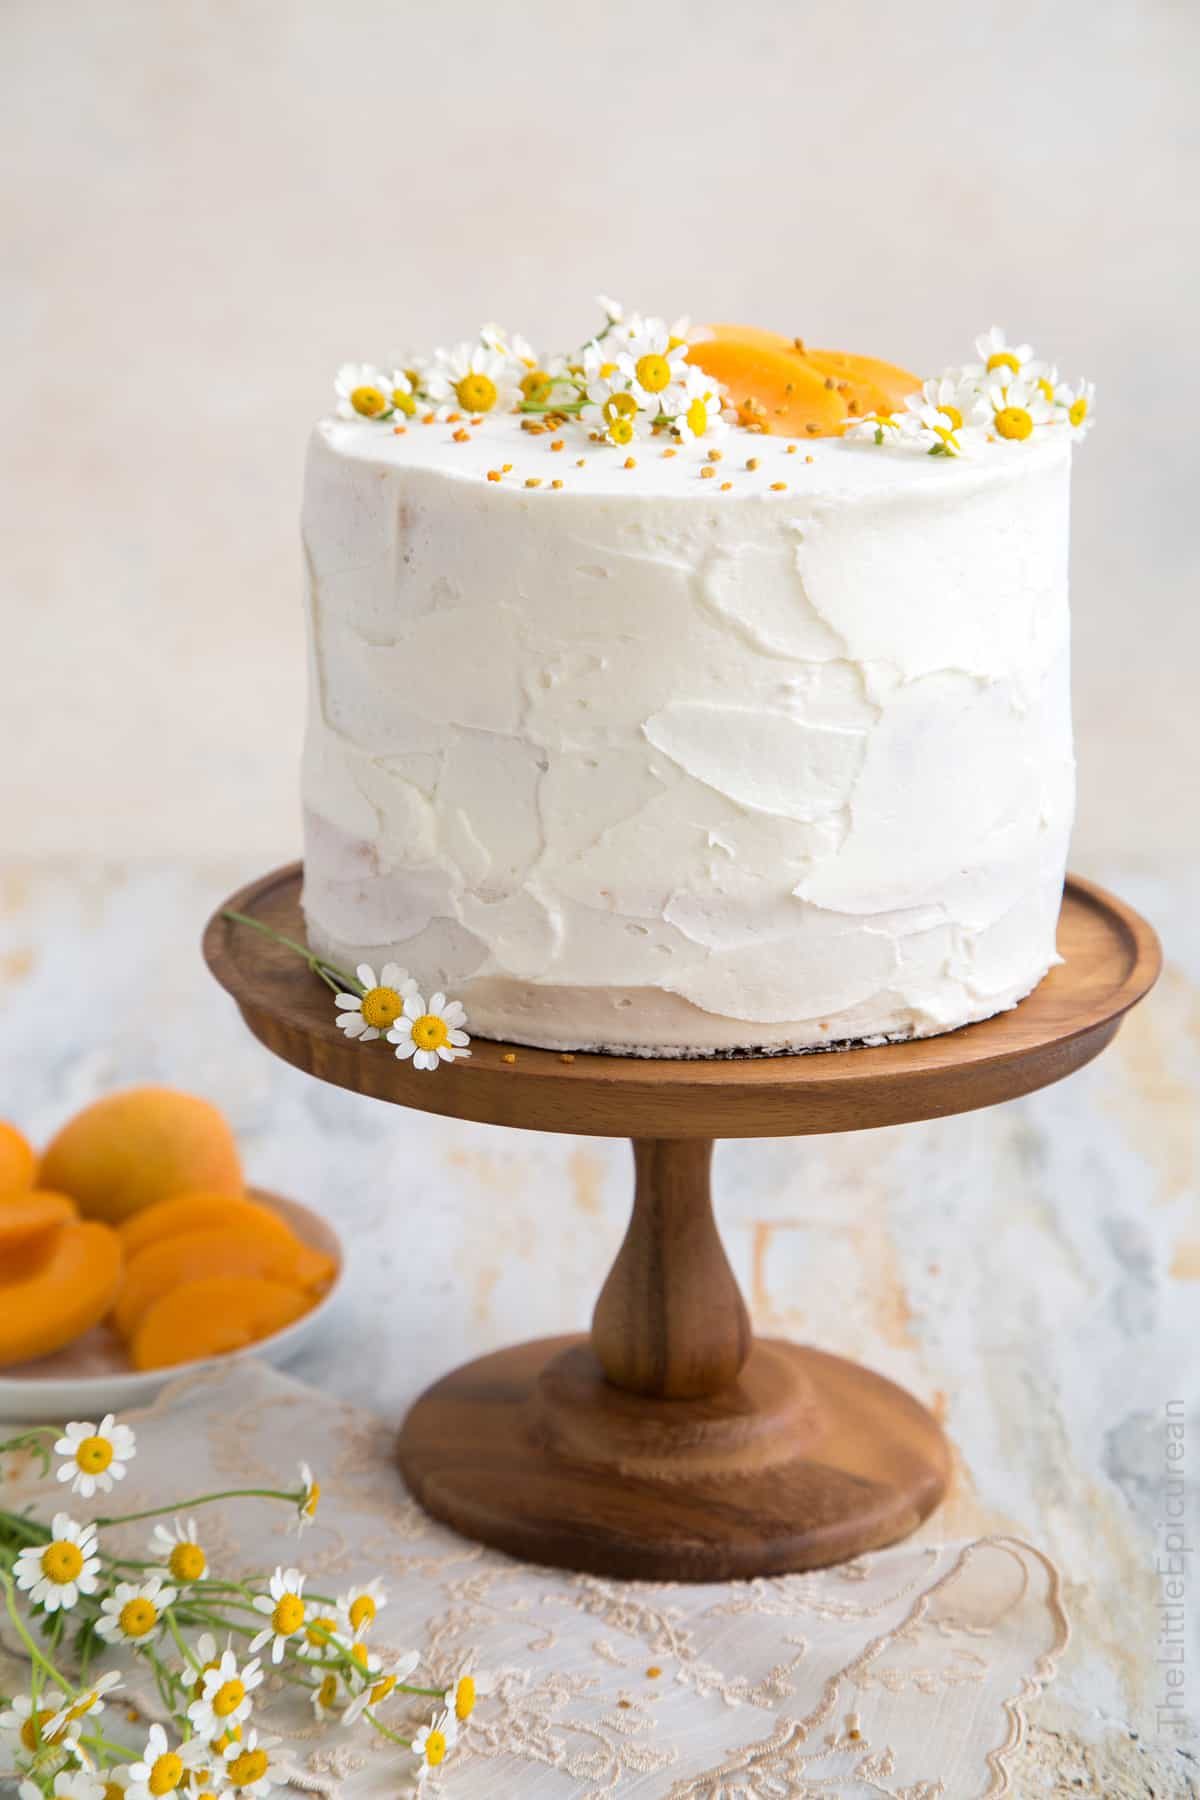 Apricot Chamomile Cake With Bee Pollen The Little Epicurean